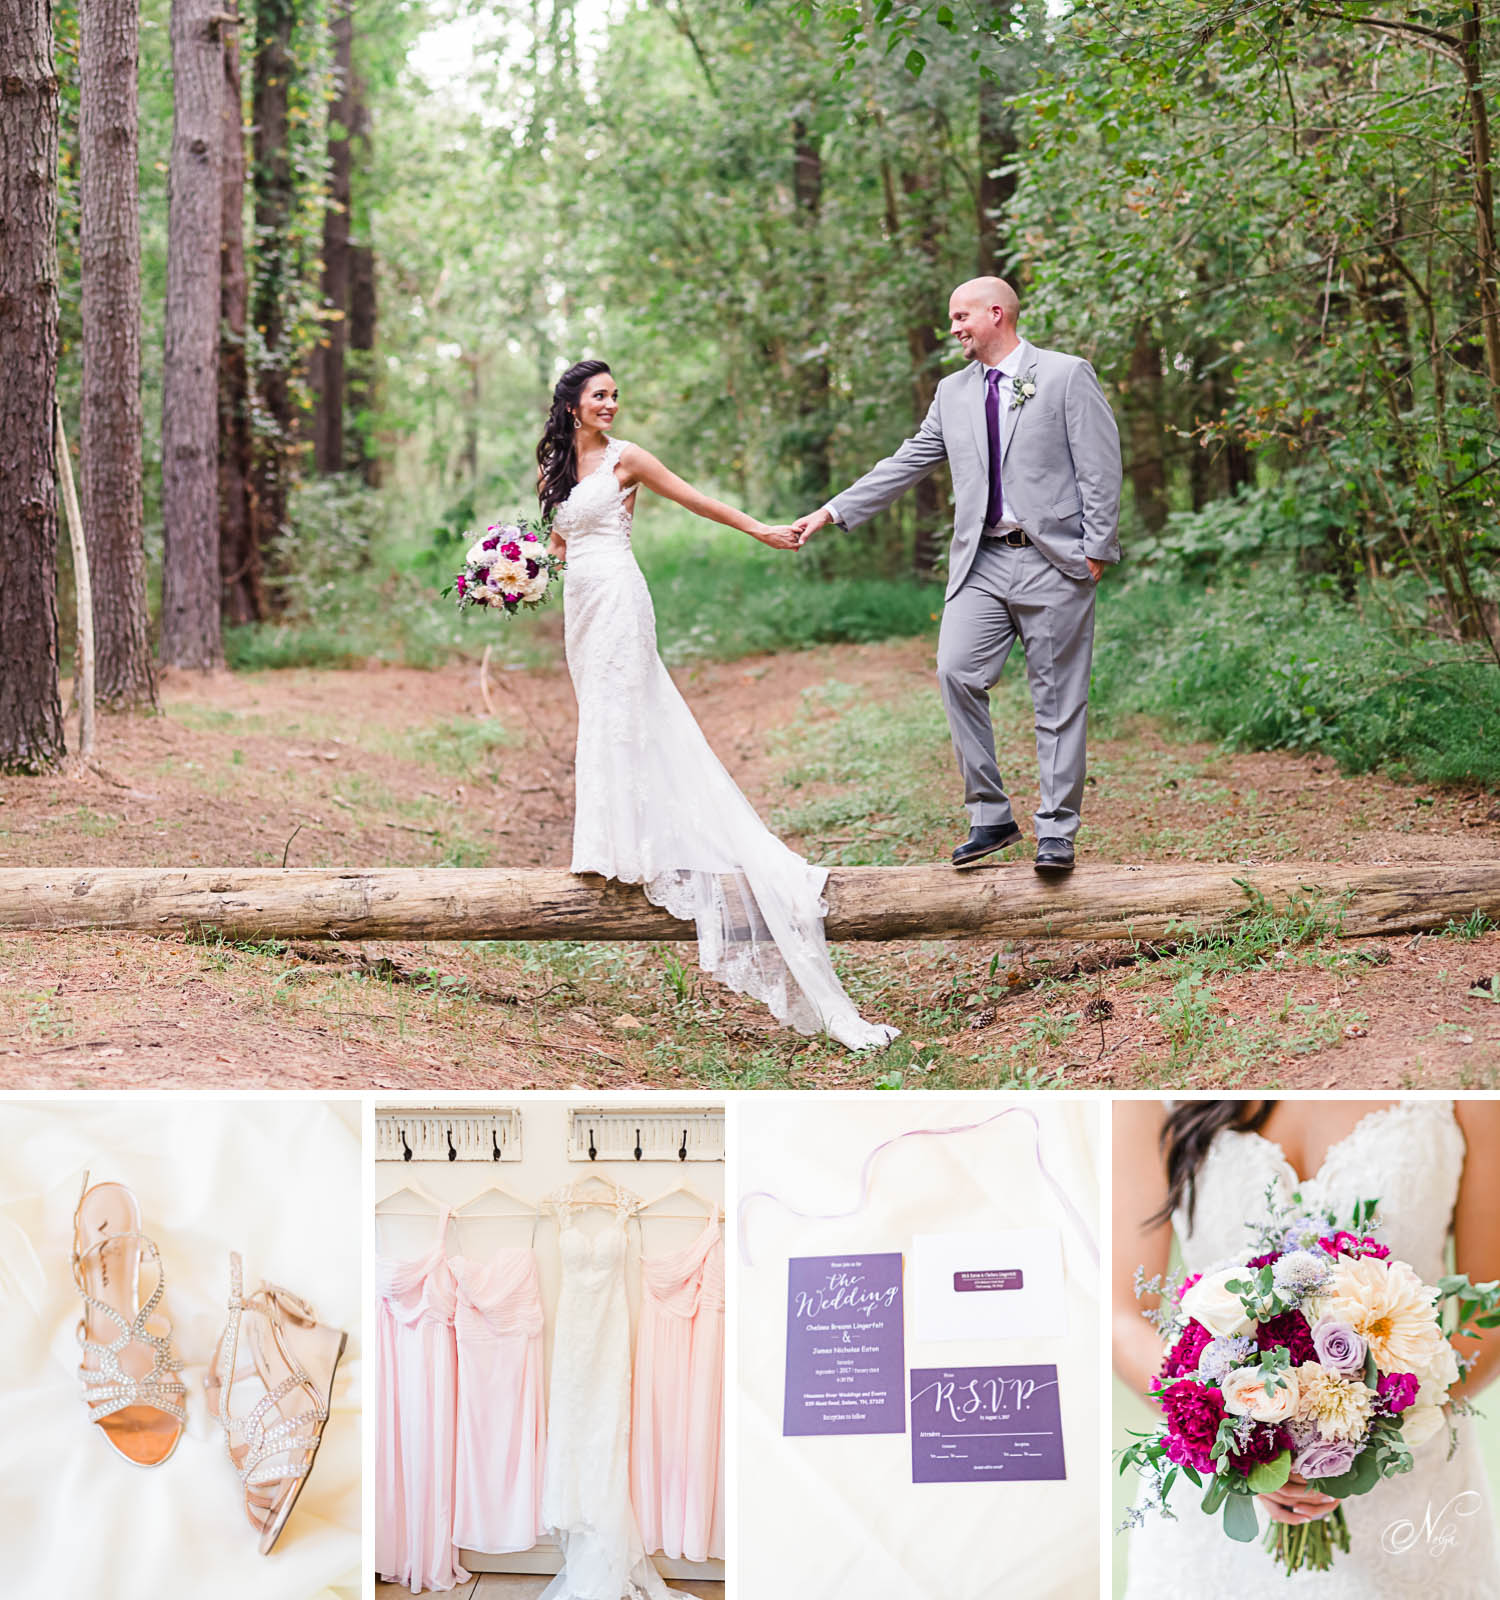 Bride and groom walking across forest bridge at Hiwassee River Weddings and wedding shoes, dresses, invitations and flowers